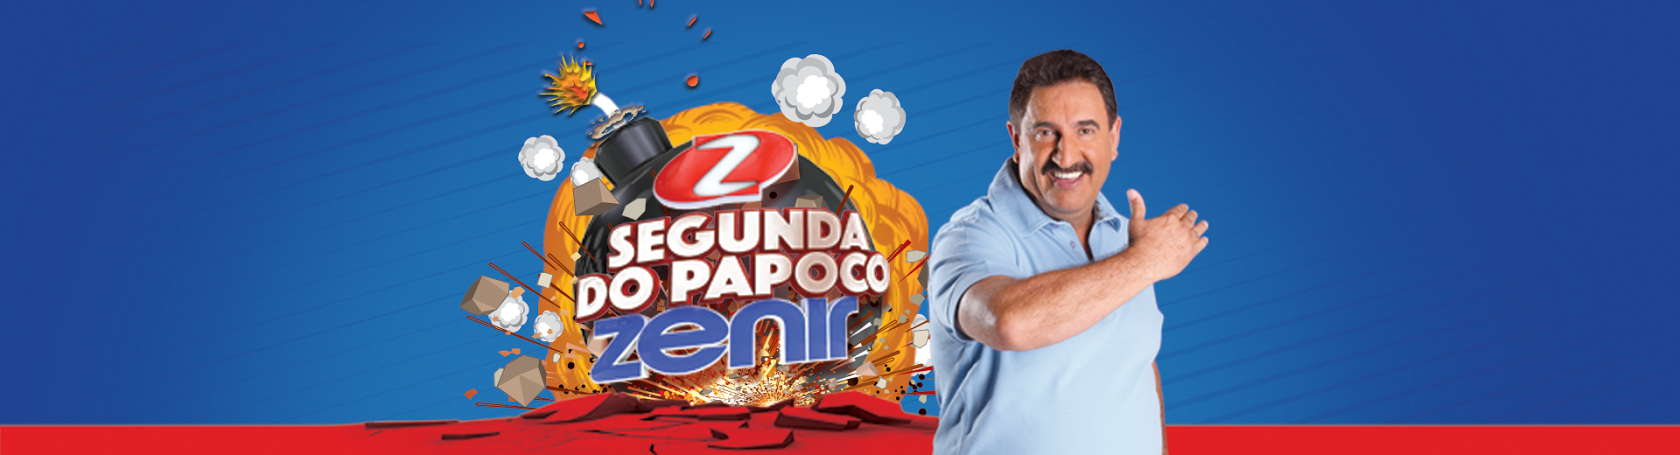 Segunda do Papoco Zenir